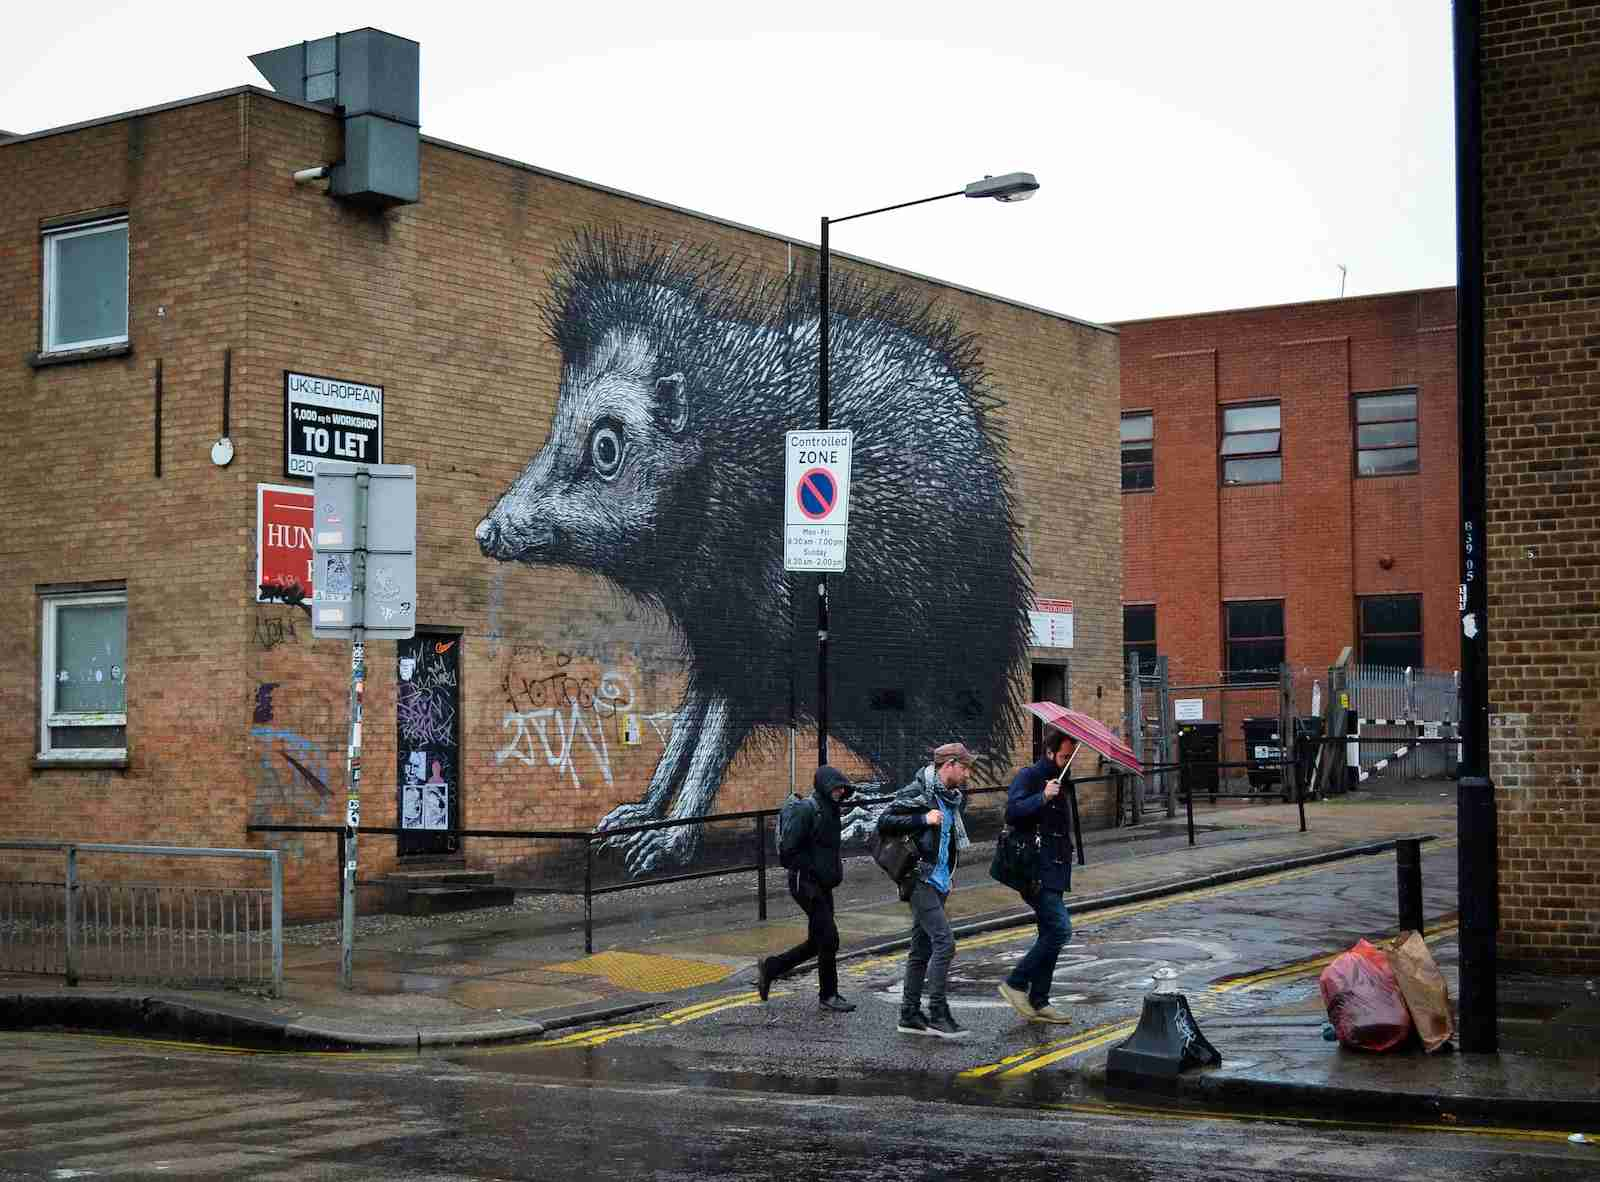 Some of the street art in Shoreditch. (Photo by S. M. Swenson/Getty Images)